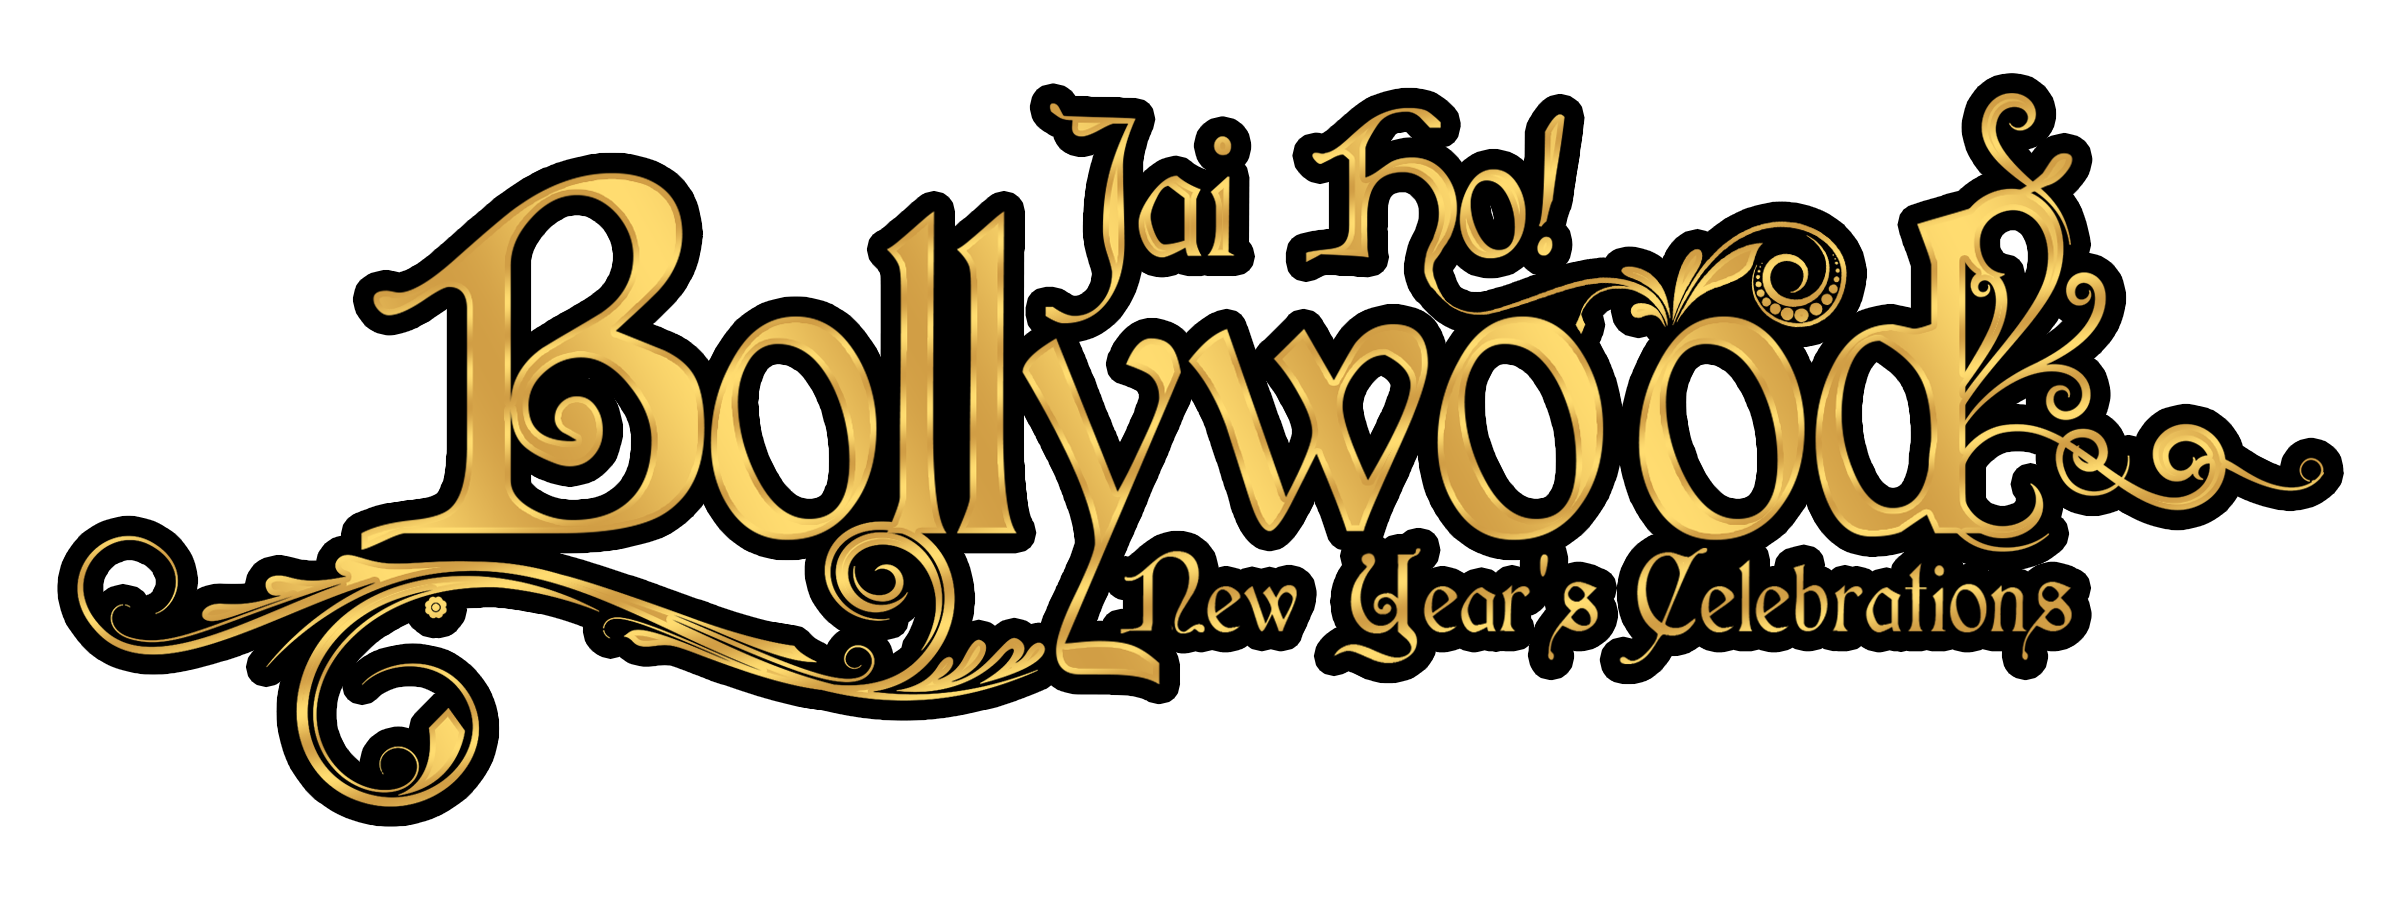 2400x900 Jai Ho! New Year's Eve Bollywood Party In Seattle, Portland Amp Sf